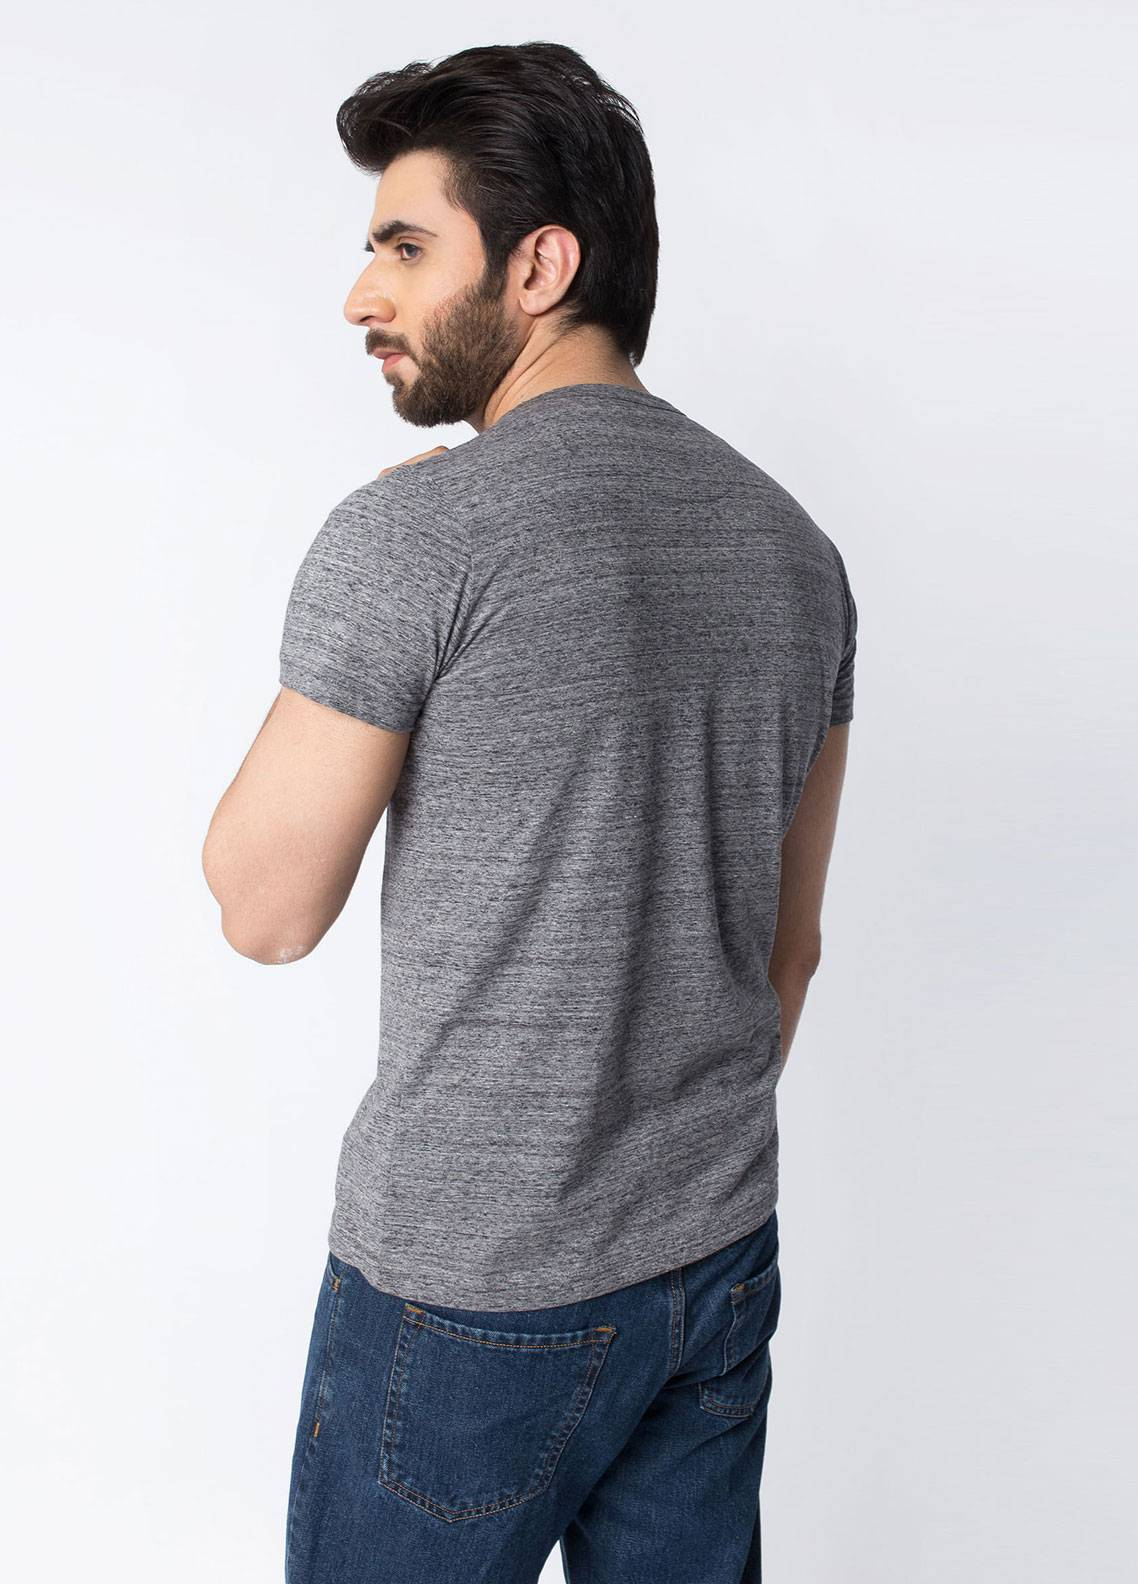 Brumano Cotton Casual Men T-Shirts - Charcoal BRM-42-977